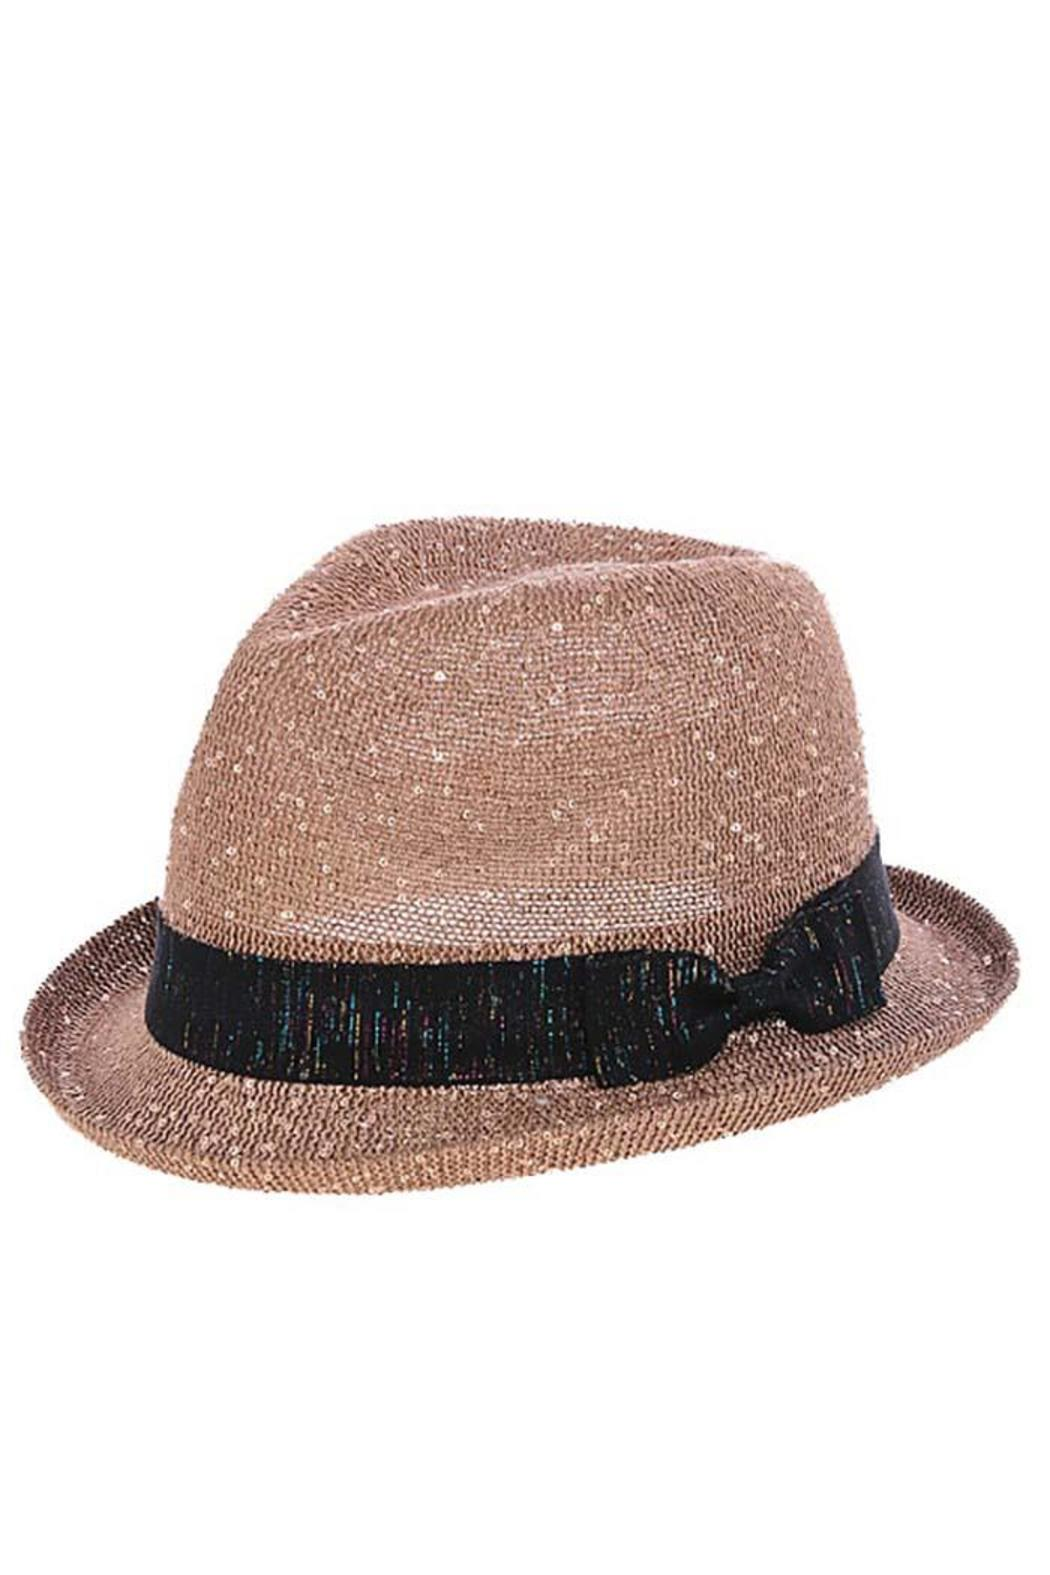 The Hatter Company Sparkly Woven Fedora - Main Image